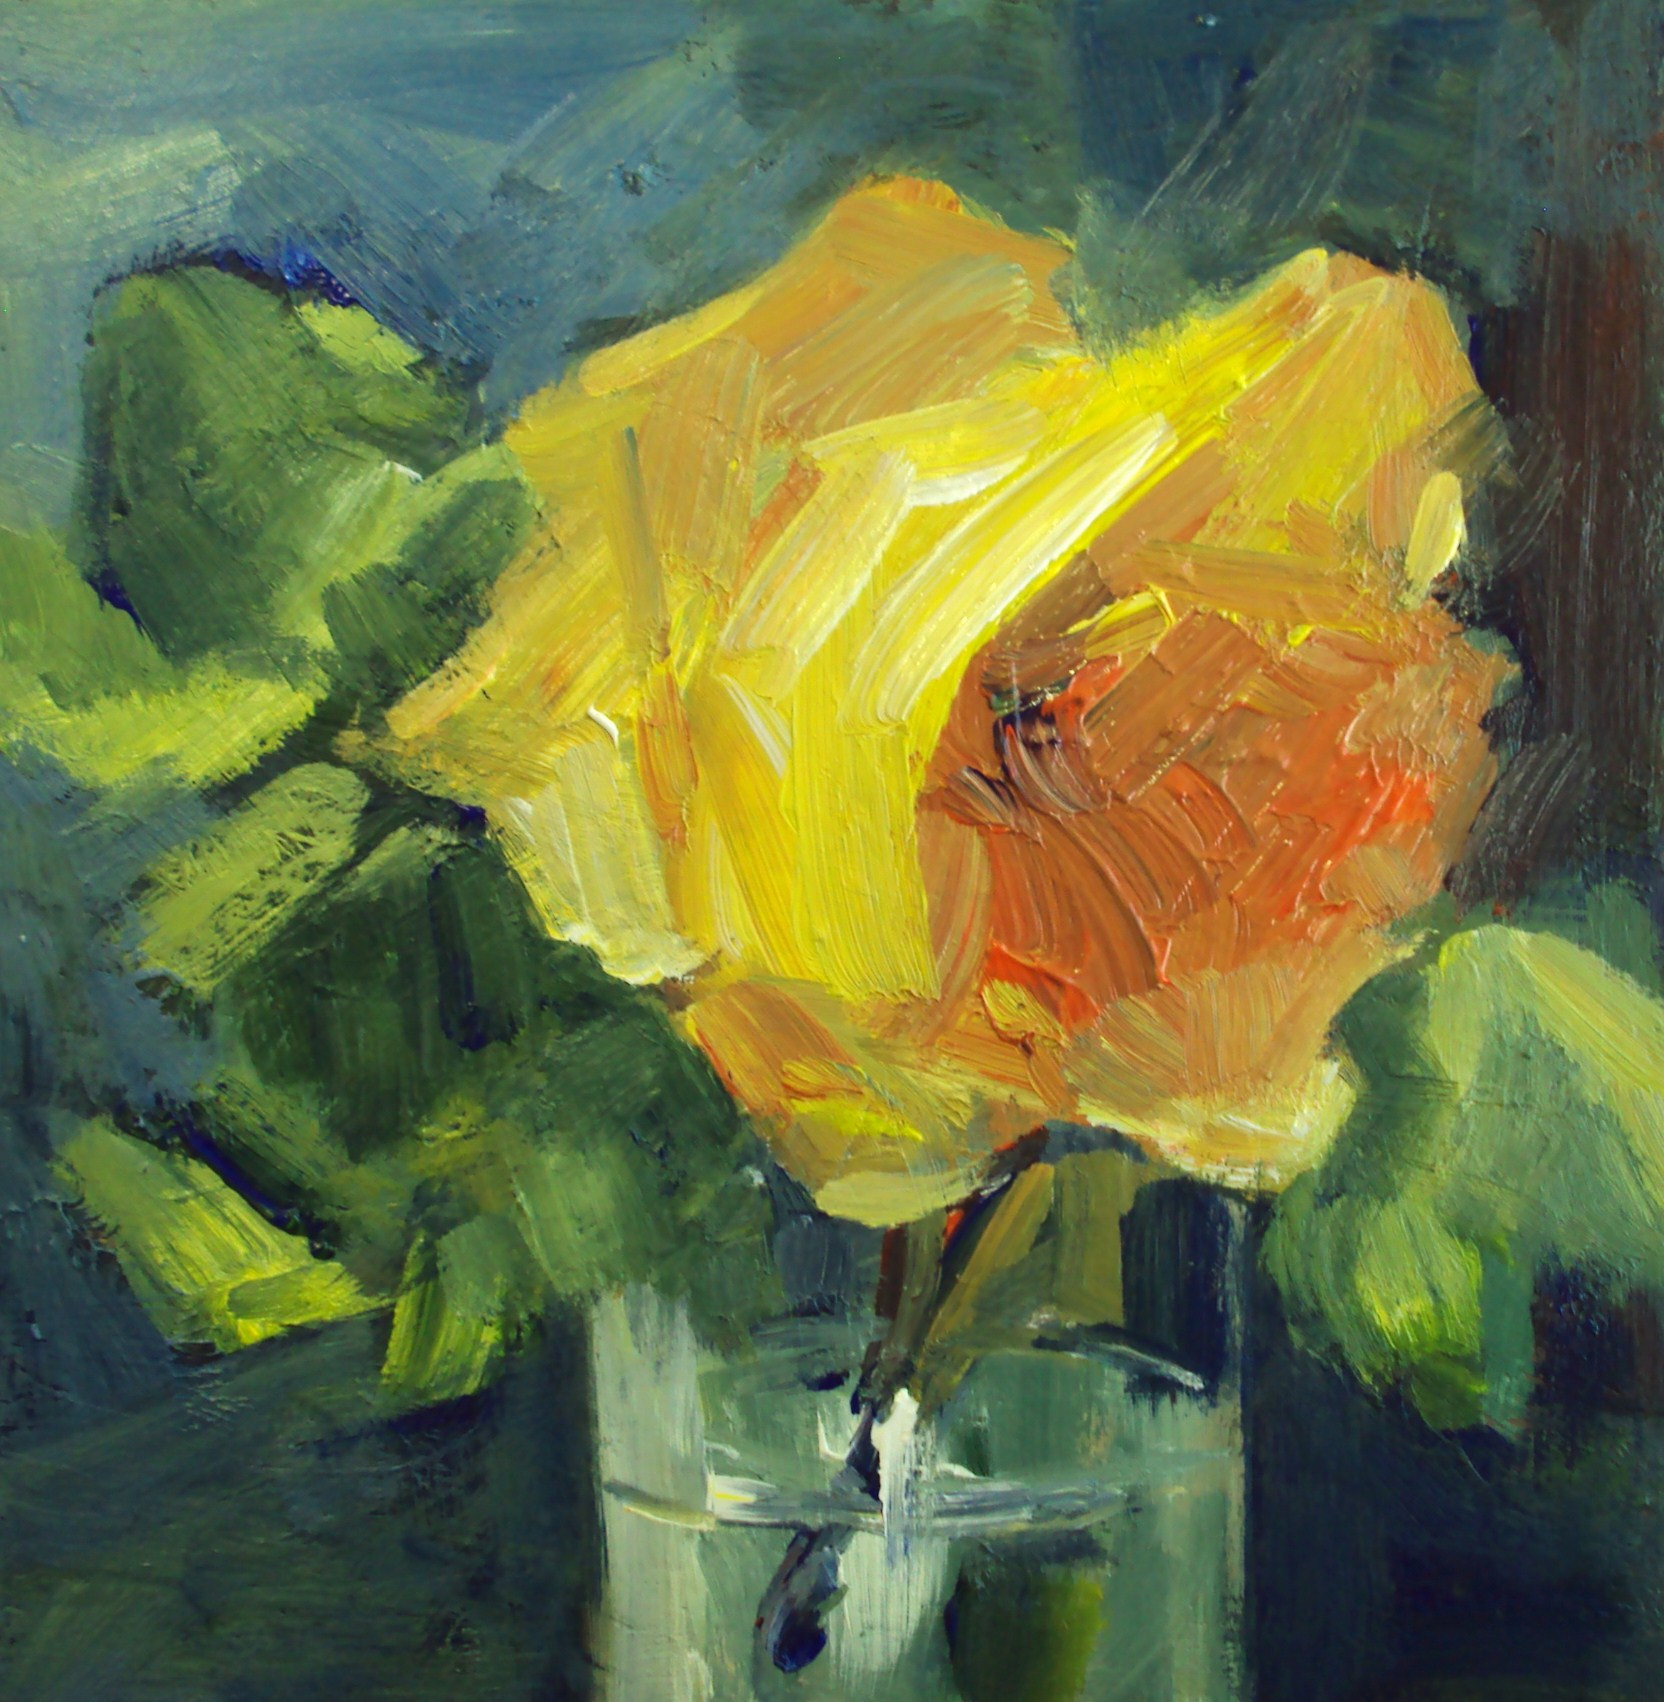 """yellow rose in a glass"" original fine art by Parastoo Ganjei"